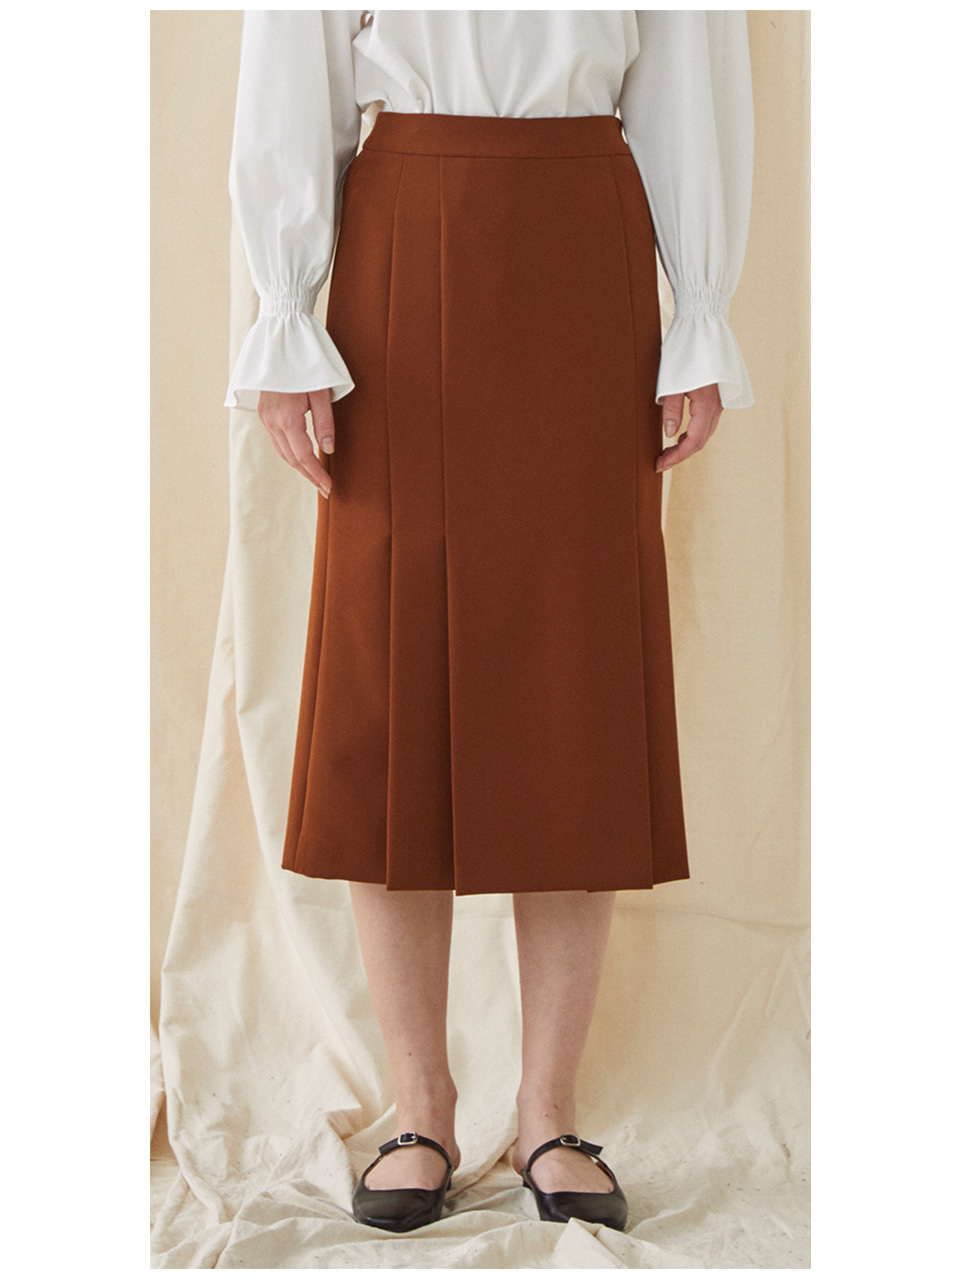 Mermaid Pleated Skirt - red brown